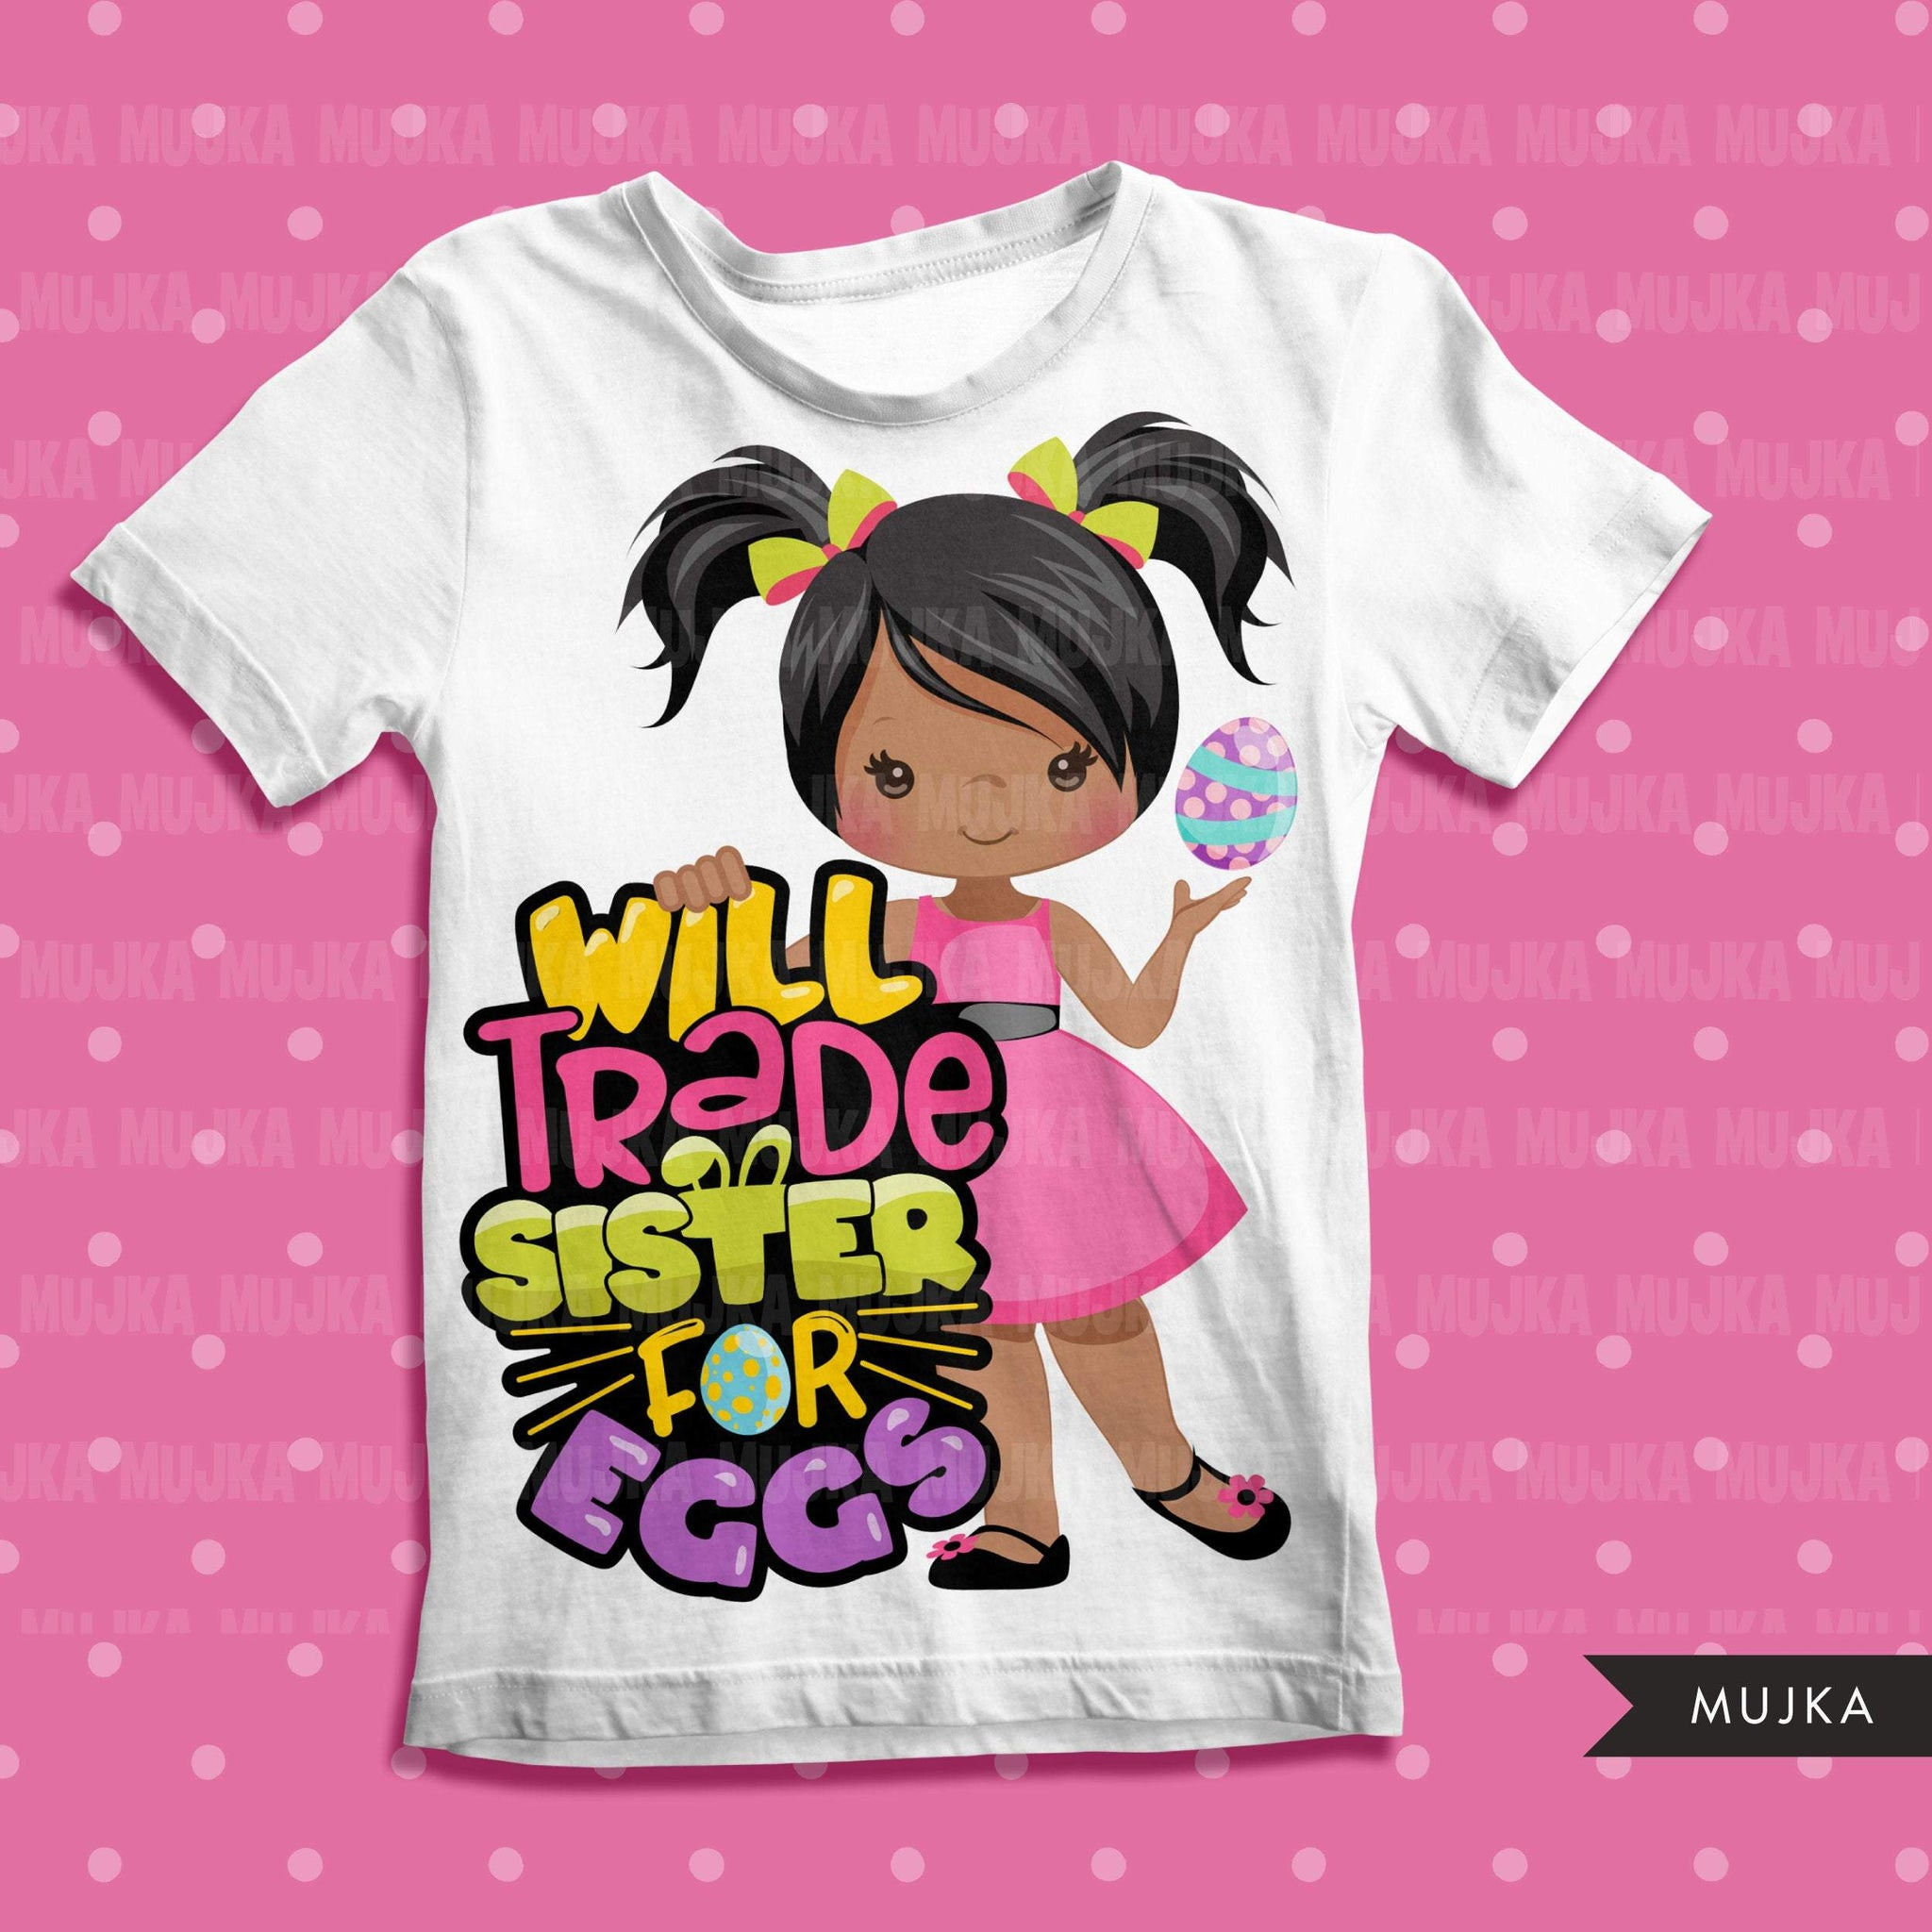 Easter PNG digital, Will trade sister for eggs Printable HTV sublimation image transfer clipart, t-shirt girl graphics